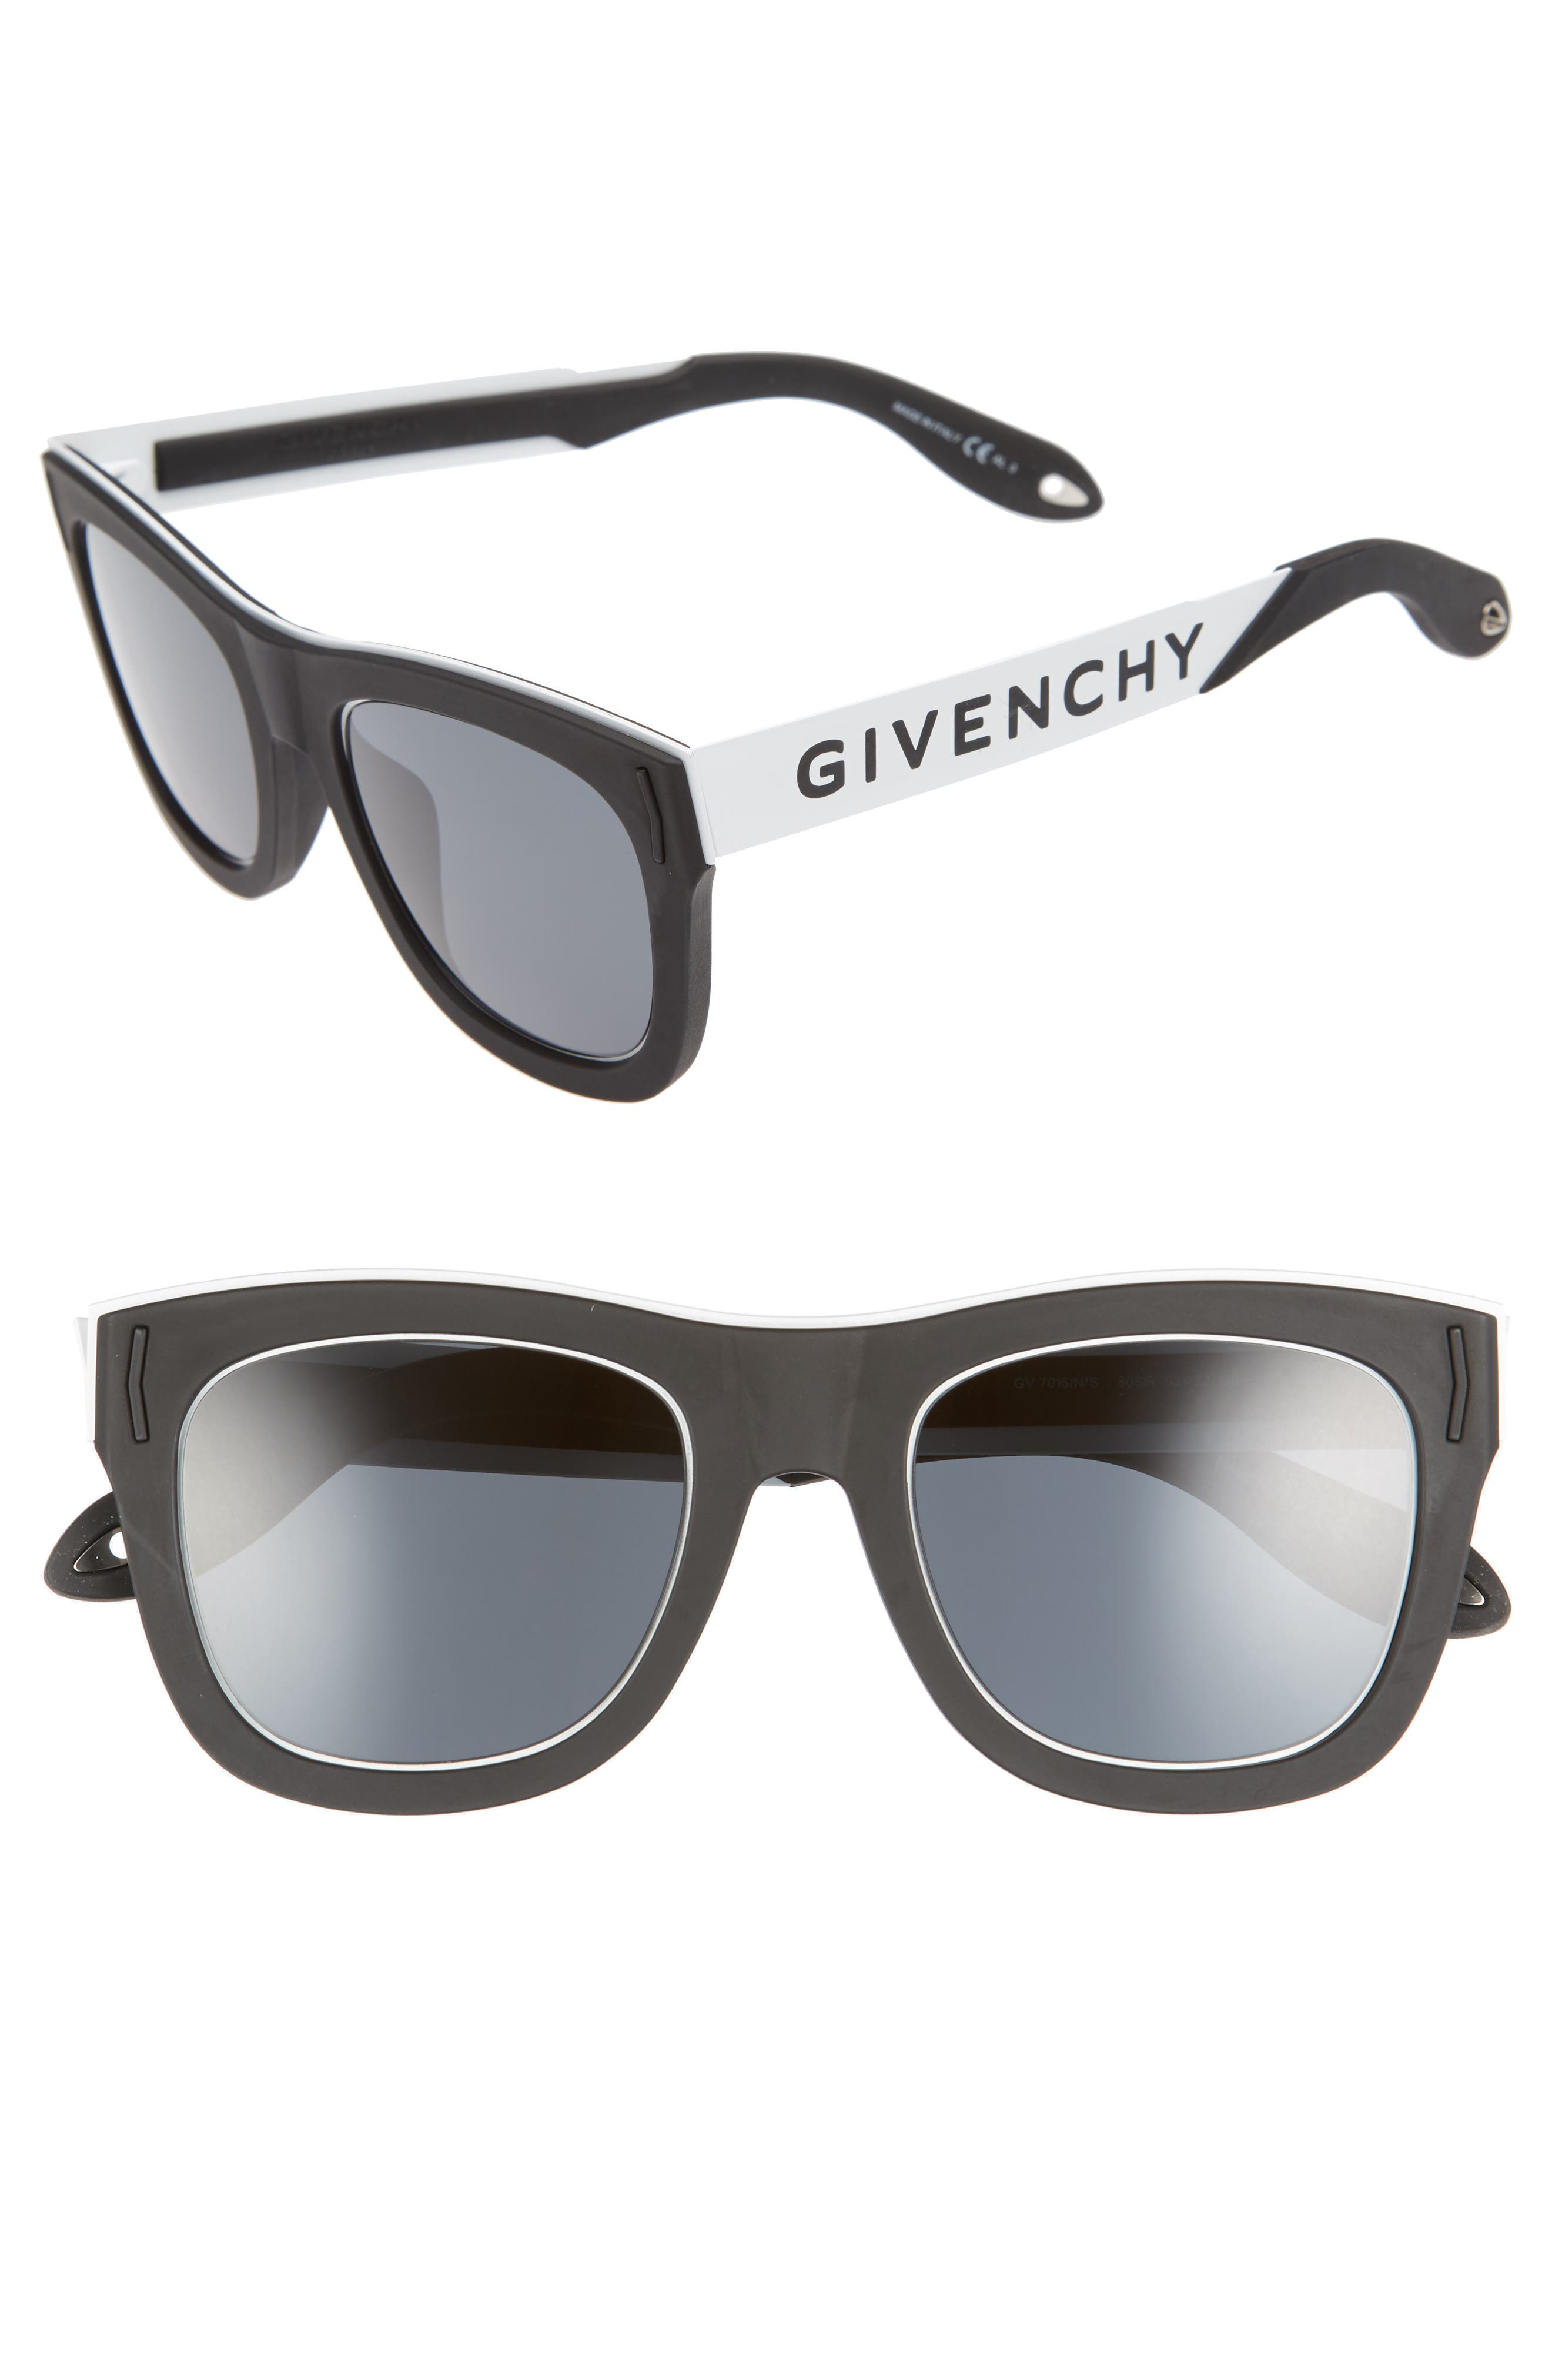 Alternate Image 1 Selected - Givenchy 52mm Mirrored Rectangular Sunglasses